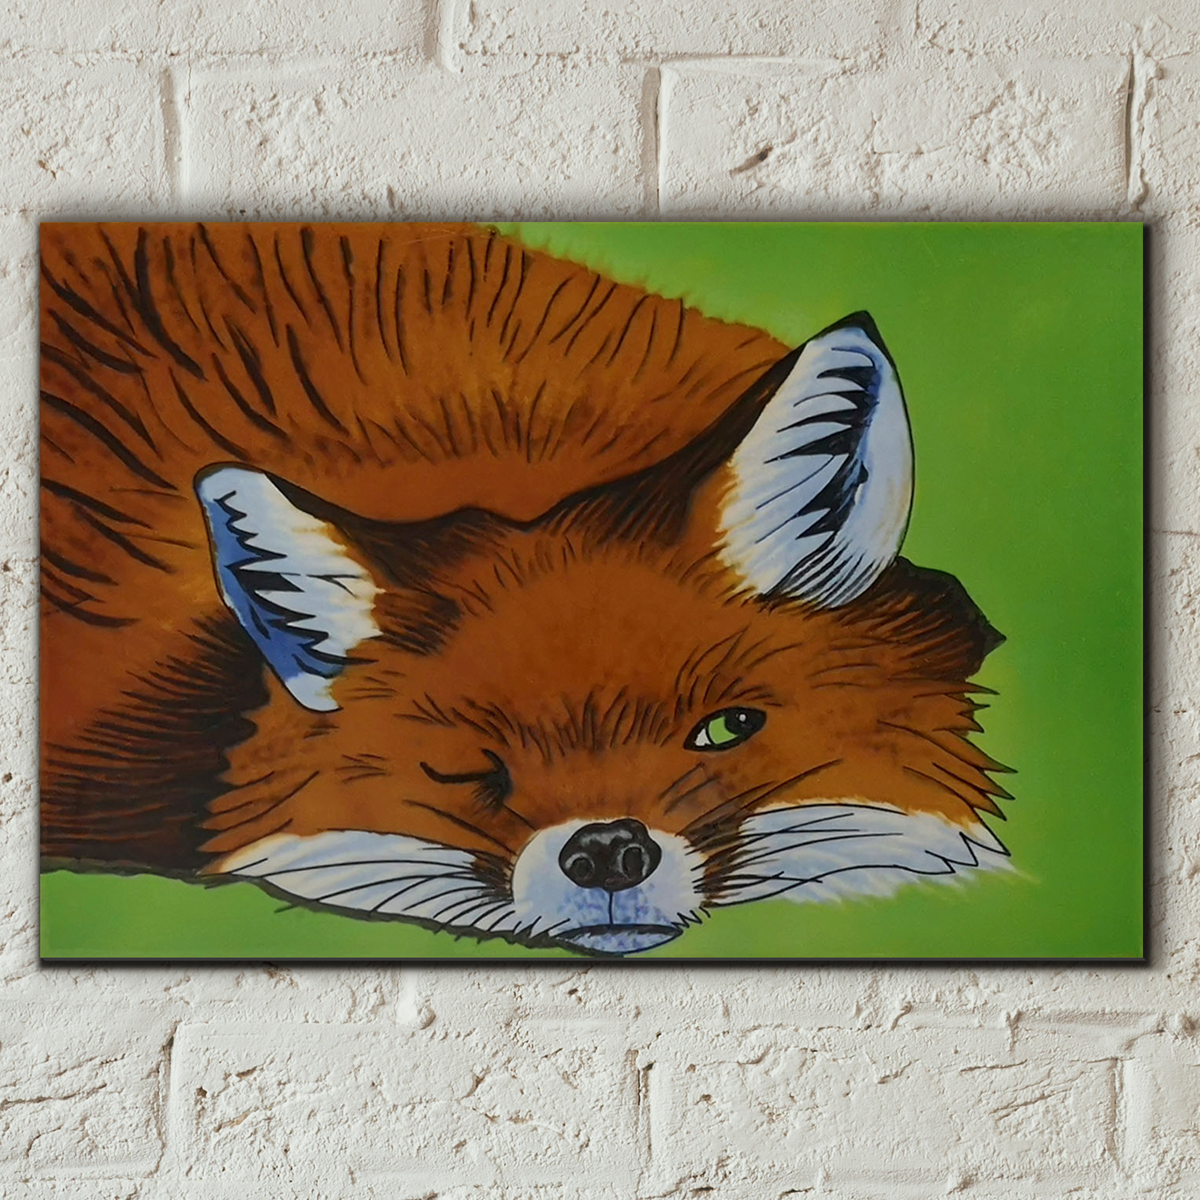 Winking Fox Decorative Ceramic Tile By Sam Fenner Prezents